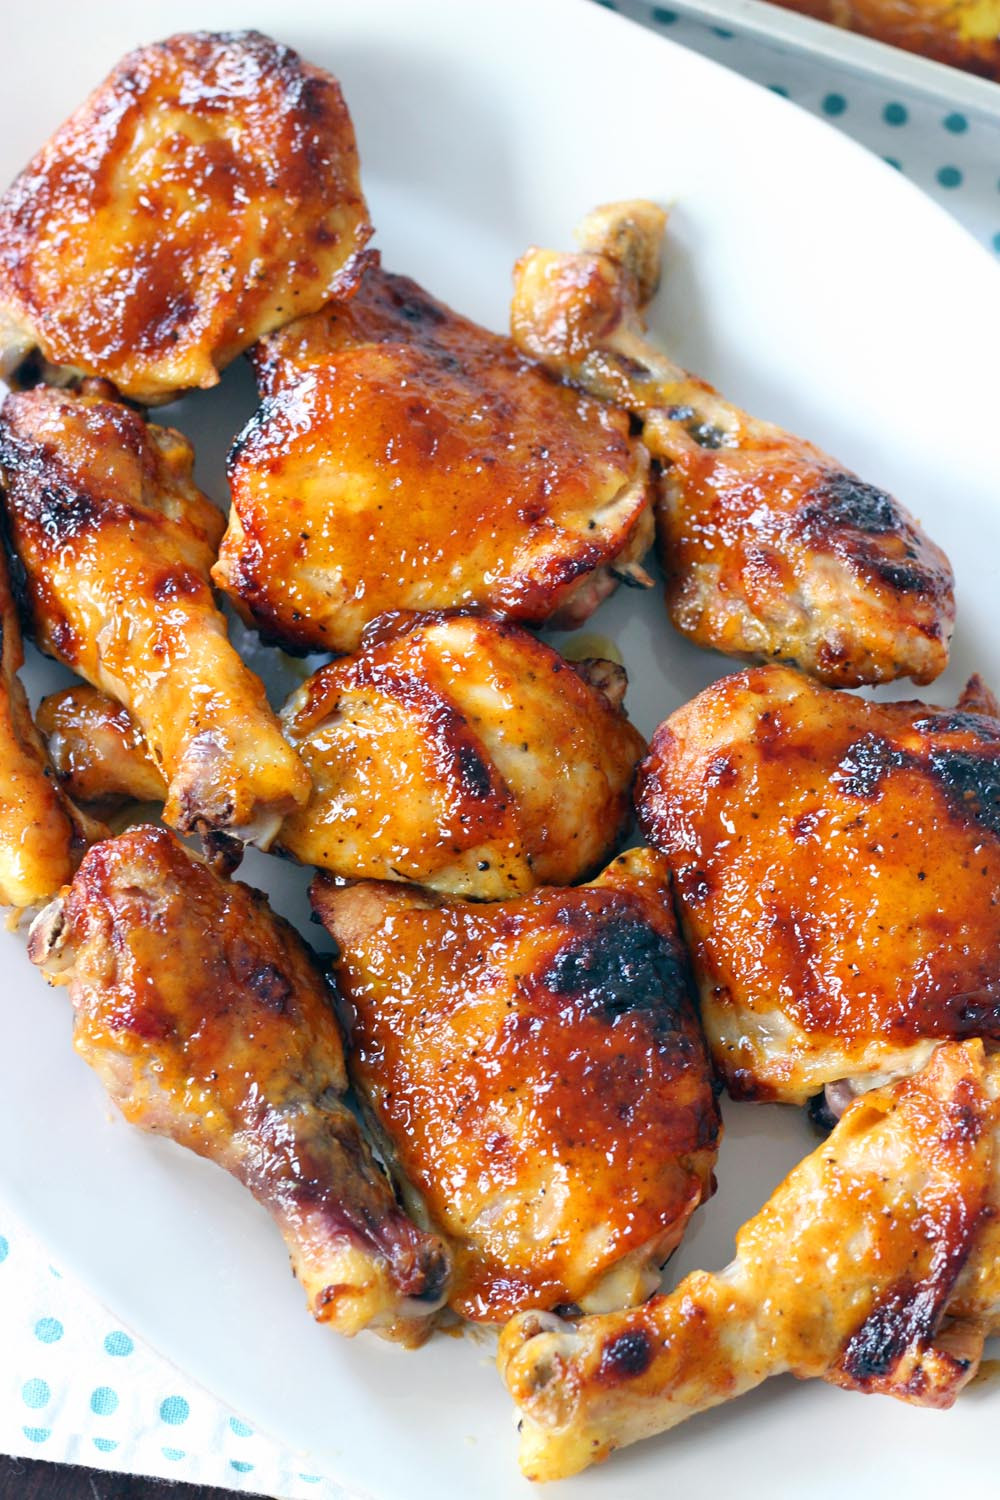 Baked Bbq Chicken Recipe  Two Ingre nt Crispy Oven Baked BBQ Chicken